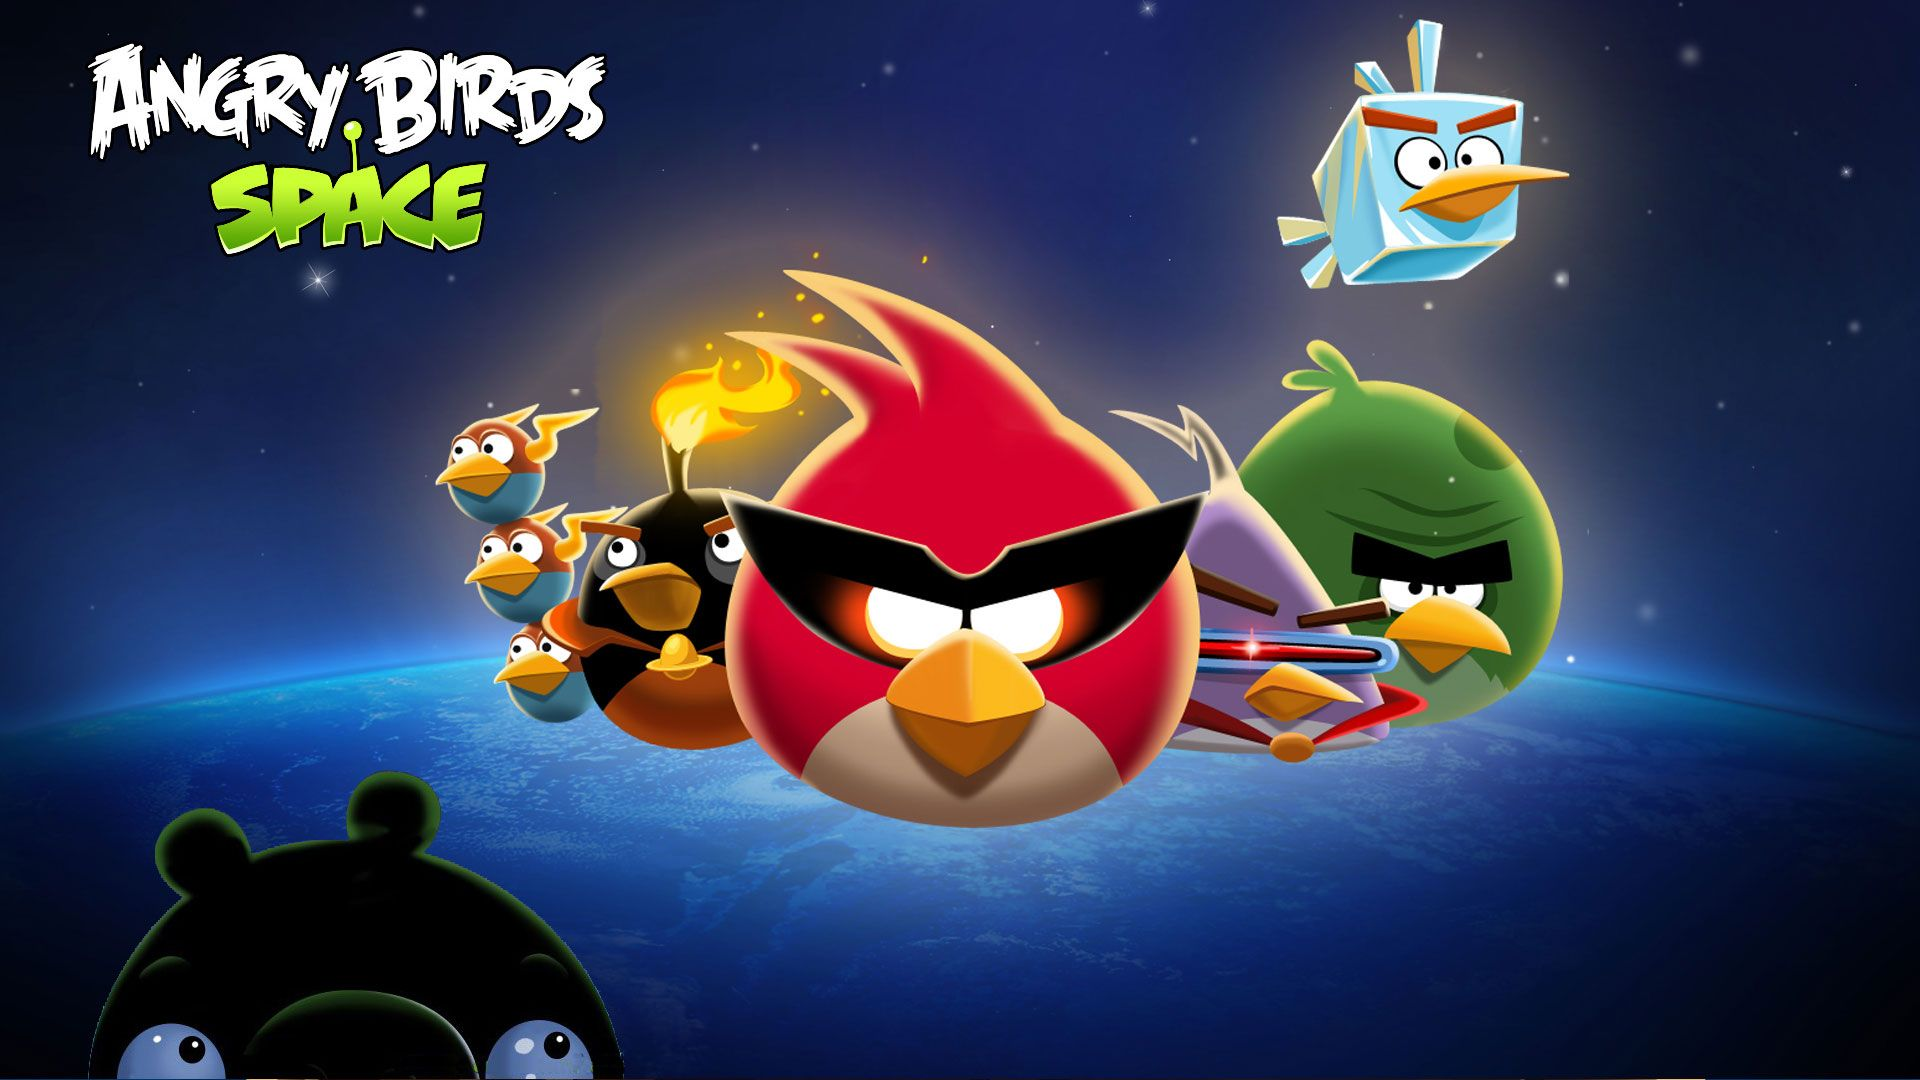 Download Angry Birds Space Images  Angry Birds Party